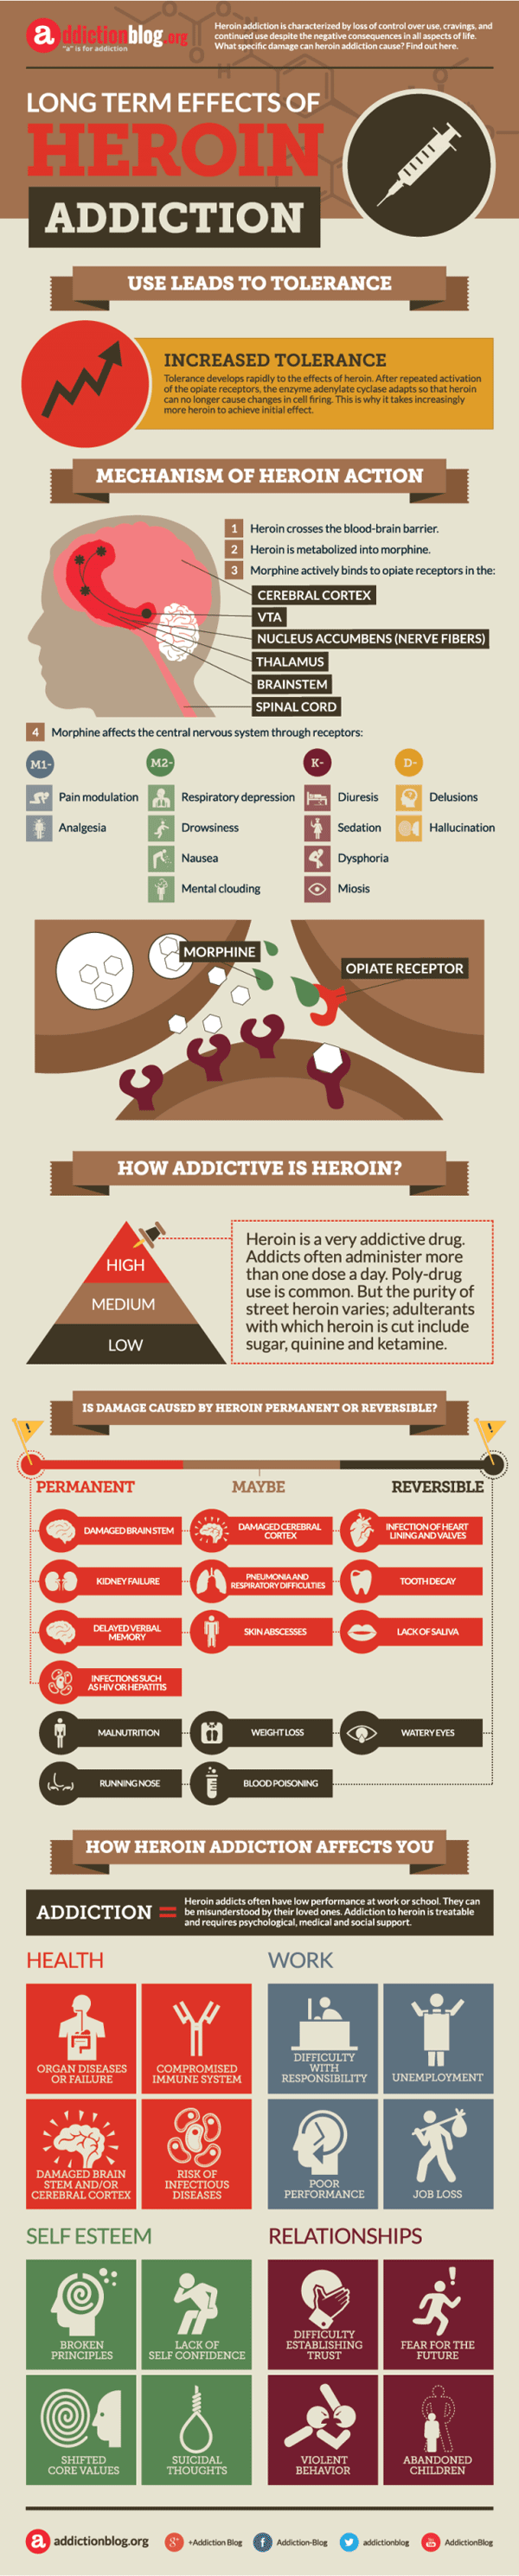 The Long Term Effects of Heroin Addiction